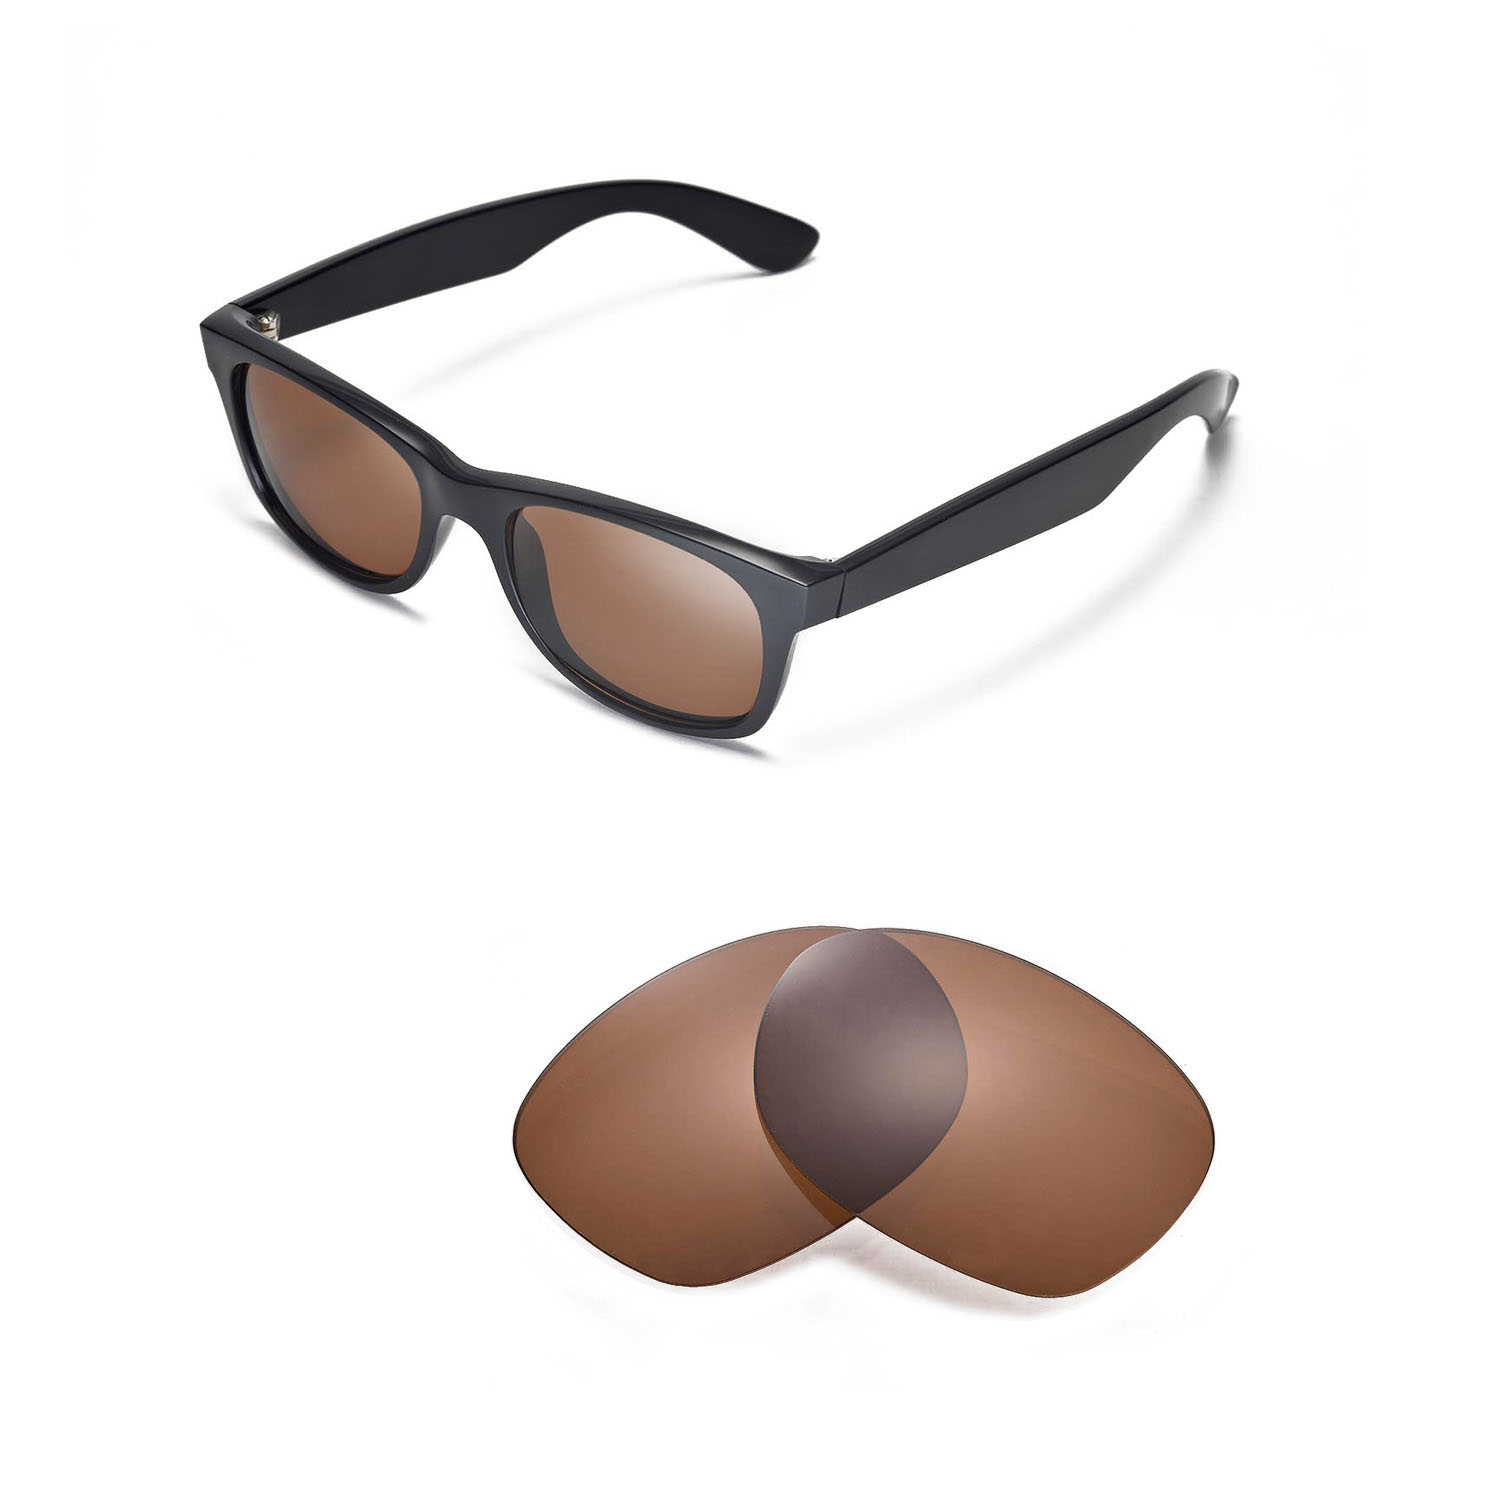 fcfe278954 Details about Walleva Polarized Brown Lenses For Ray-Ban Wayfarer RB2132  52mm